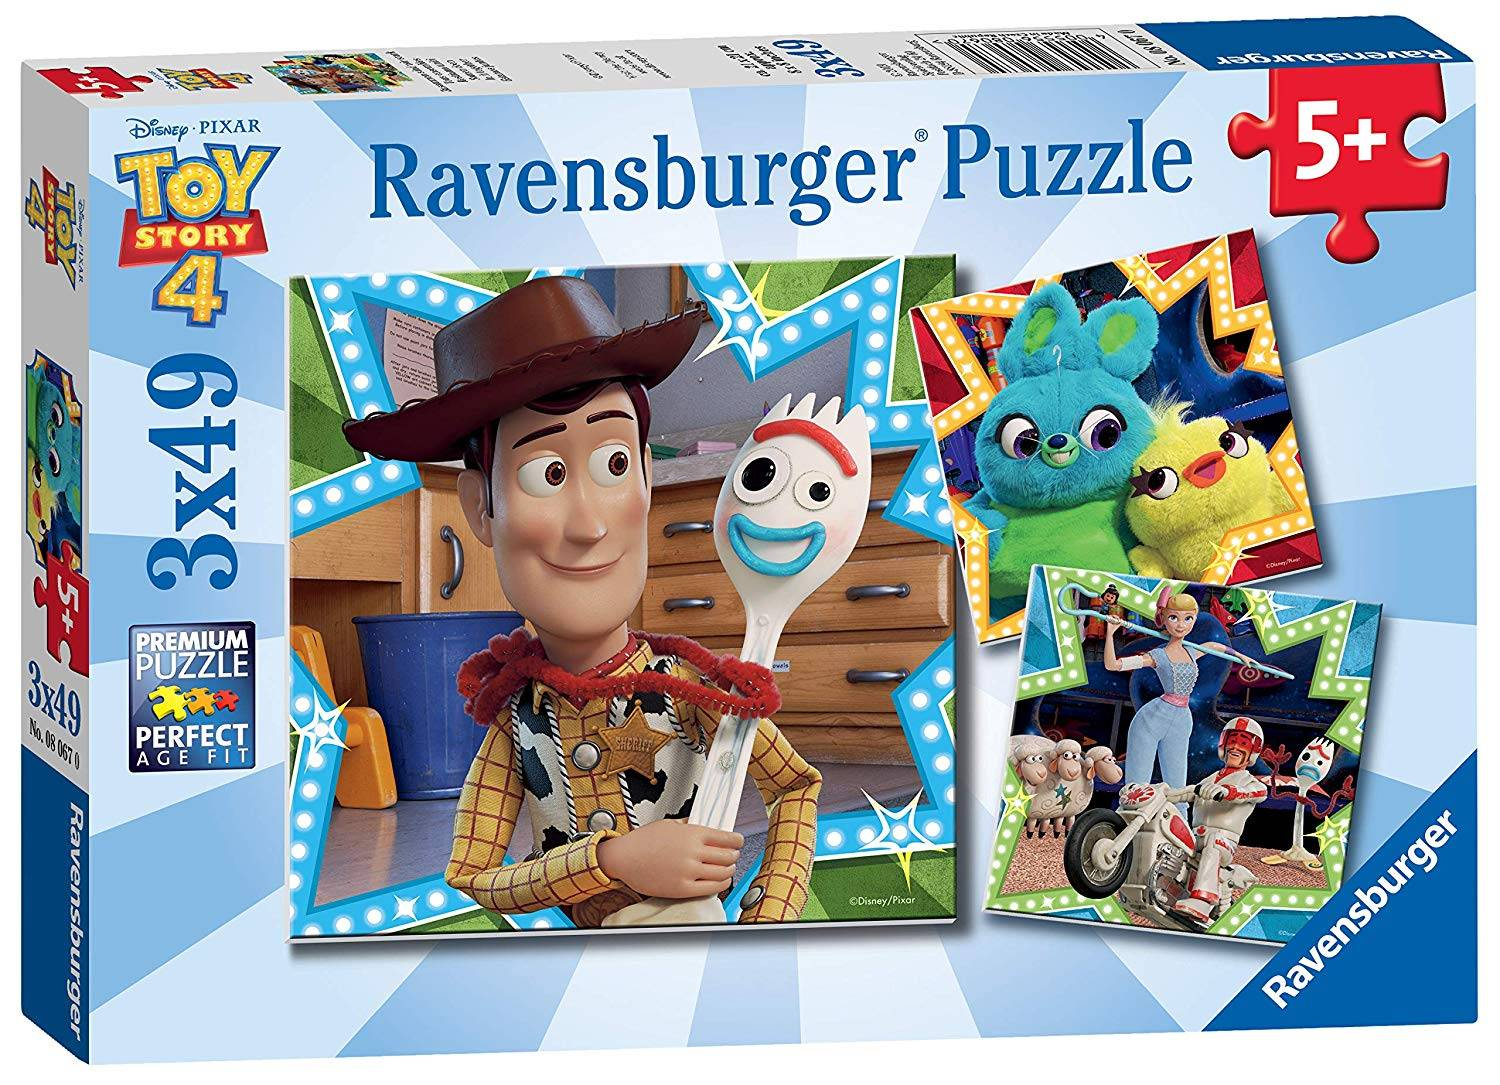 Ravensburger 3 x 49pc Puzzles Toy Story 4